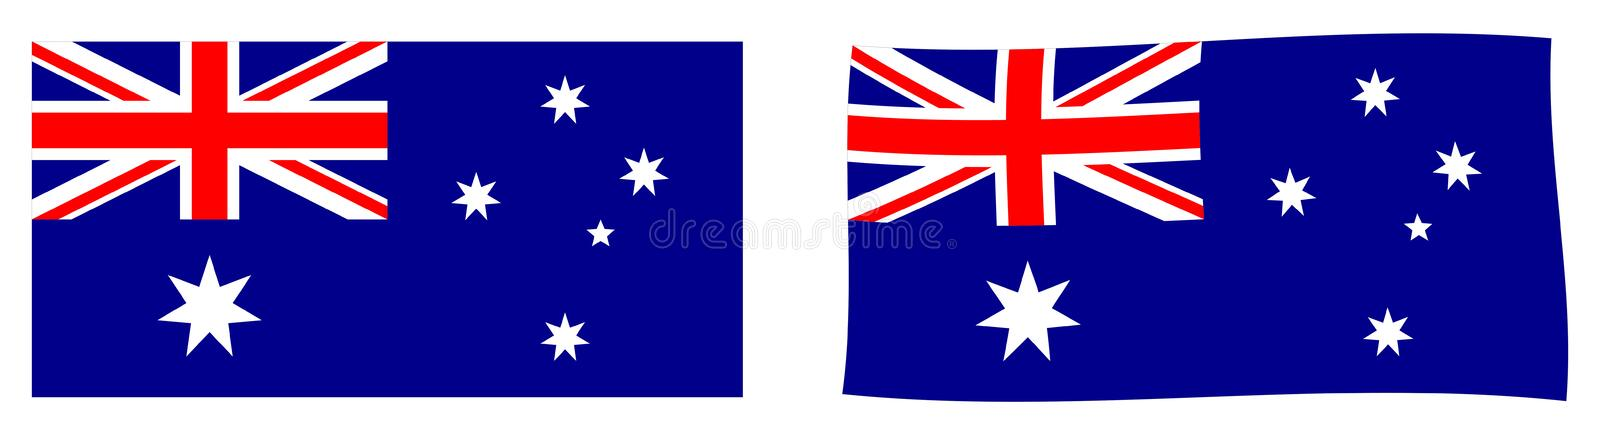 Commonwealth de drapeau d'Australie Versi simple et ondulant légèrement illustration stock